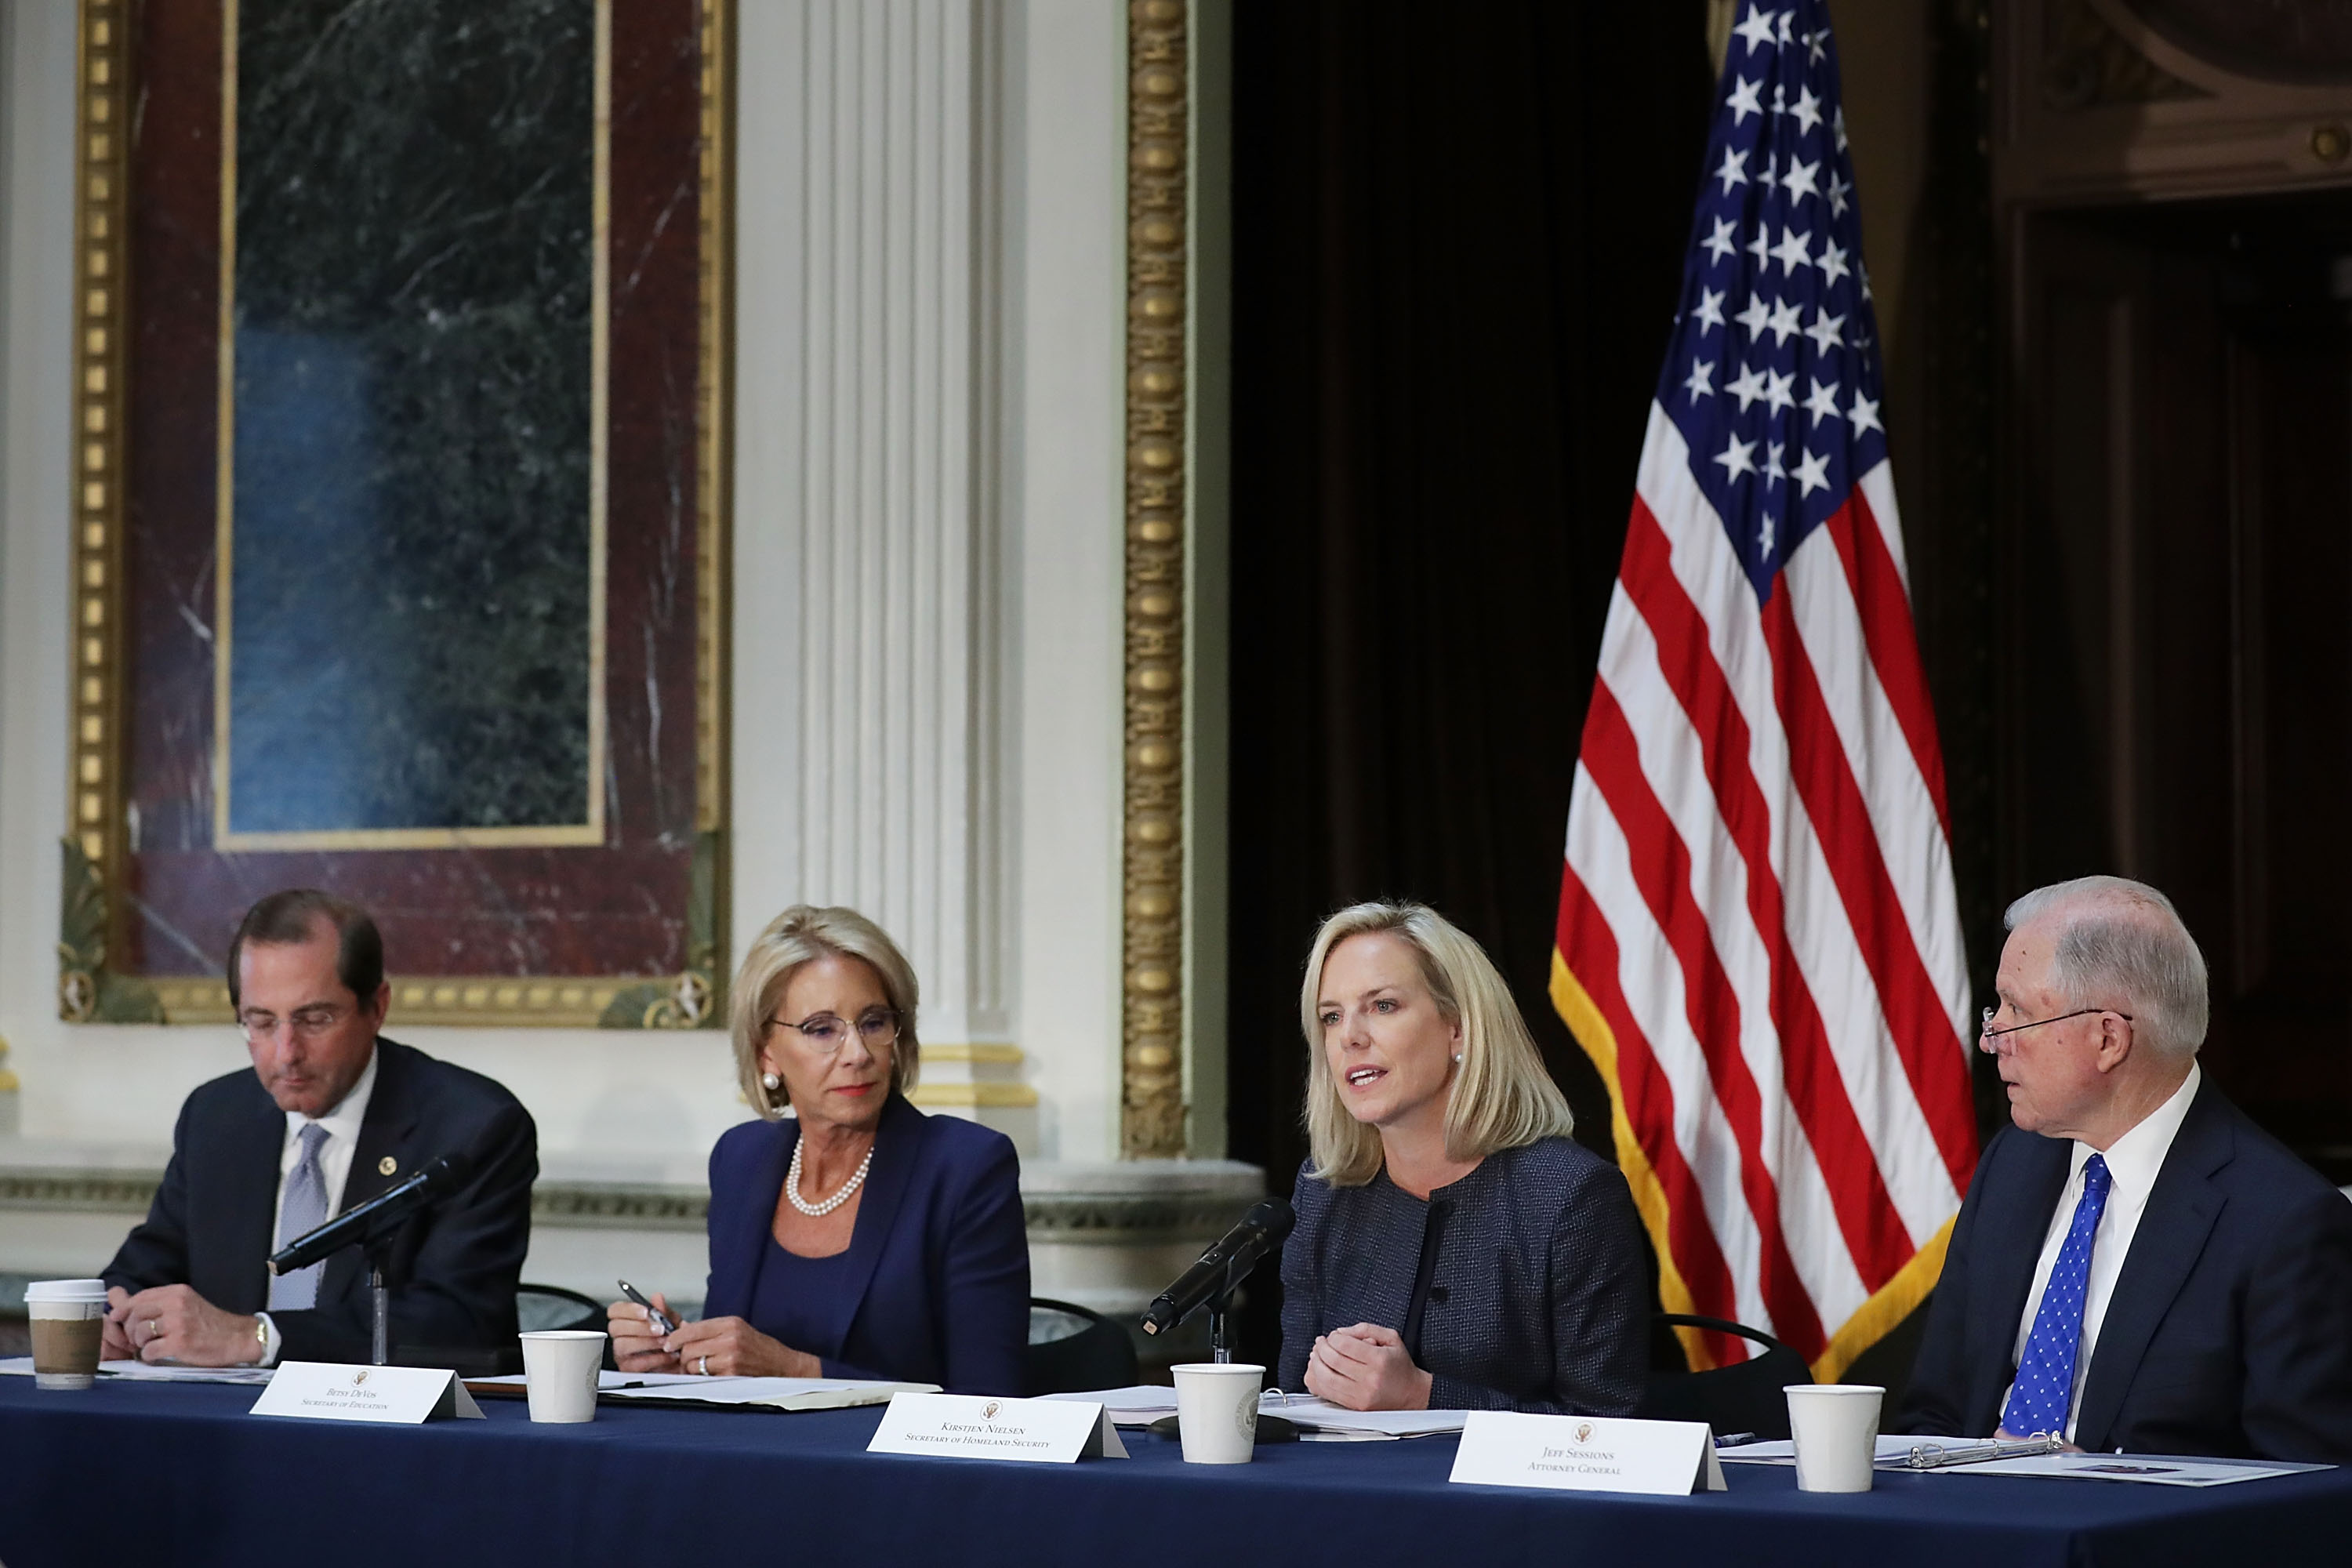 U.S. Health and Human Services Secretary Alex Azar, Education Secretary Betsy DeVos, Homeland Security Secretary Kirstjen Nielsen and Attorney General Jeff Sessions participate in a meeting of the Federal Commission on School Safety on August 16, 2018.   (Photo by Chip Somodevilla/Getty Images)